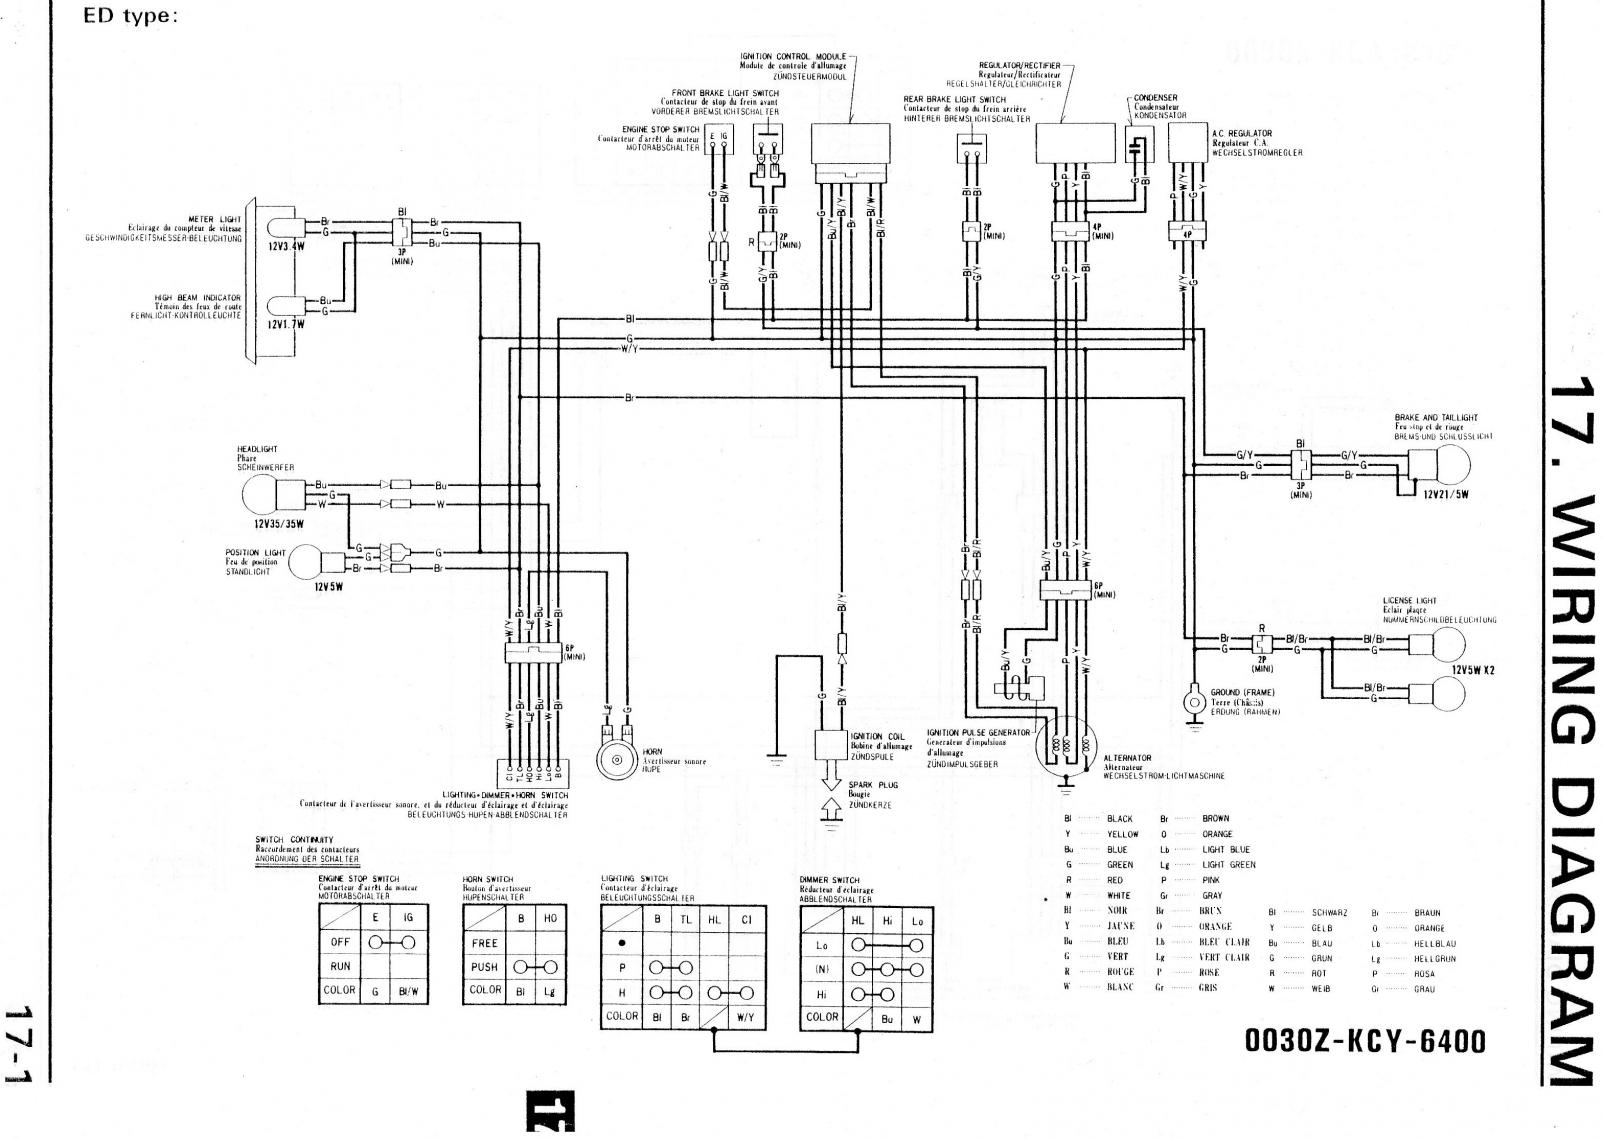 2002 mitsubishi diamante engine compartment fuse box diagram